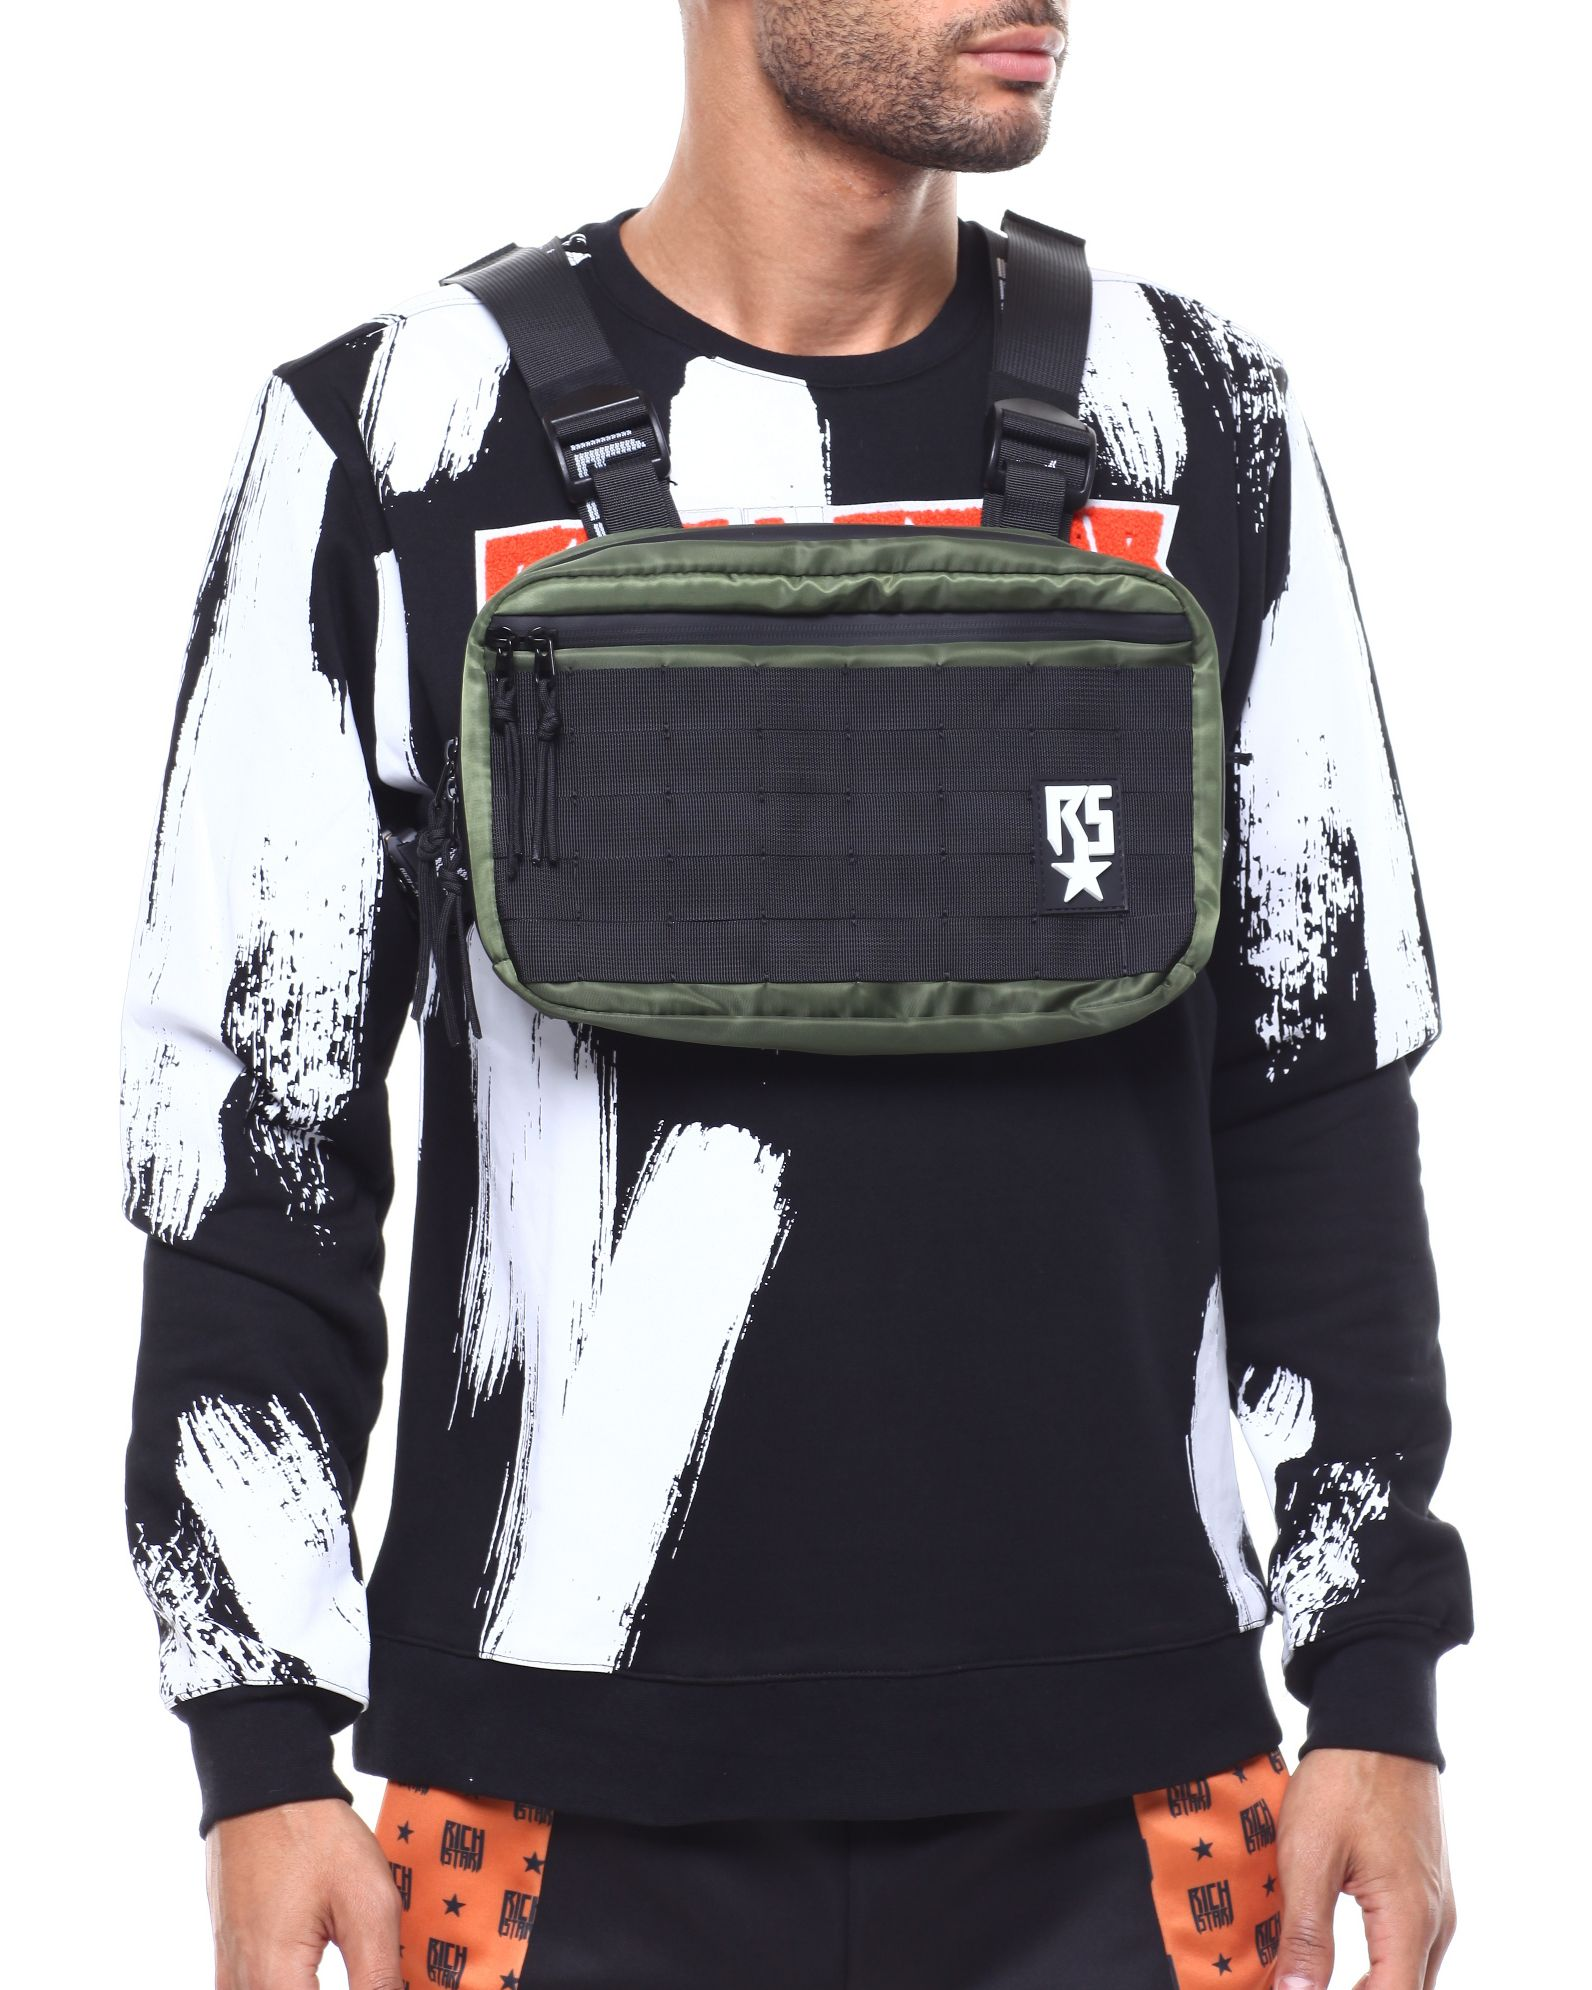 Hip-hop Kanye West Street Ins Hot Style Chest Rig Military Tactical Chest Bag Functional Package Prechest Bag Vest Bag Lovers Cheapest Price From Our Site Men's Bags